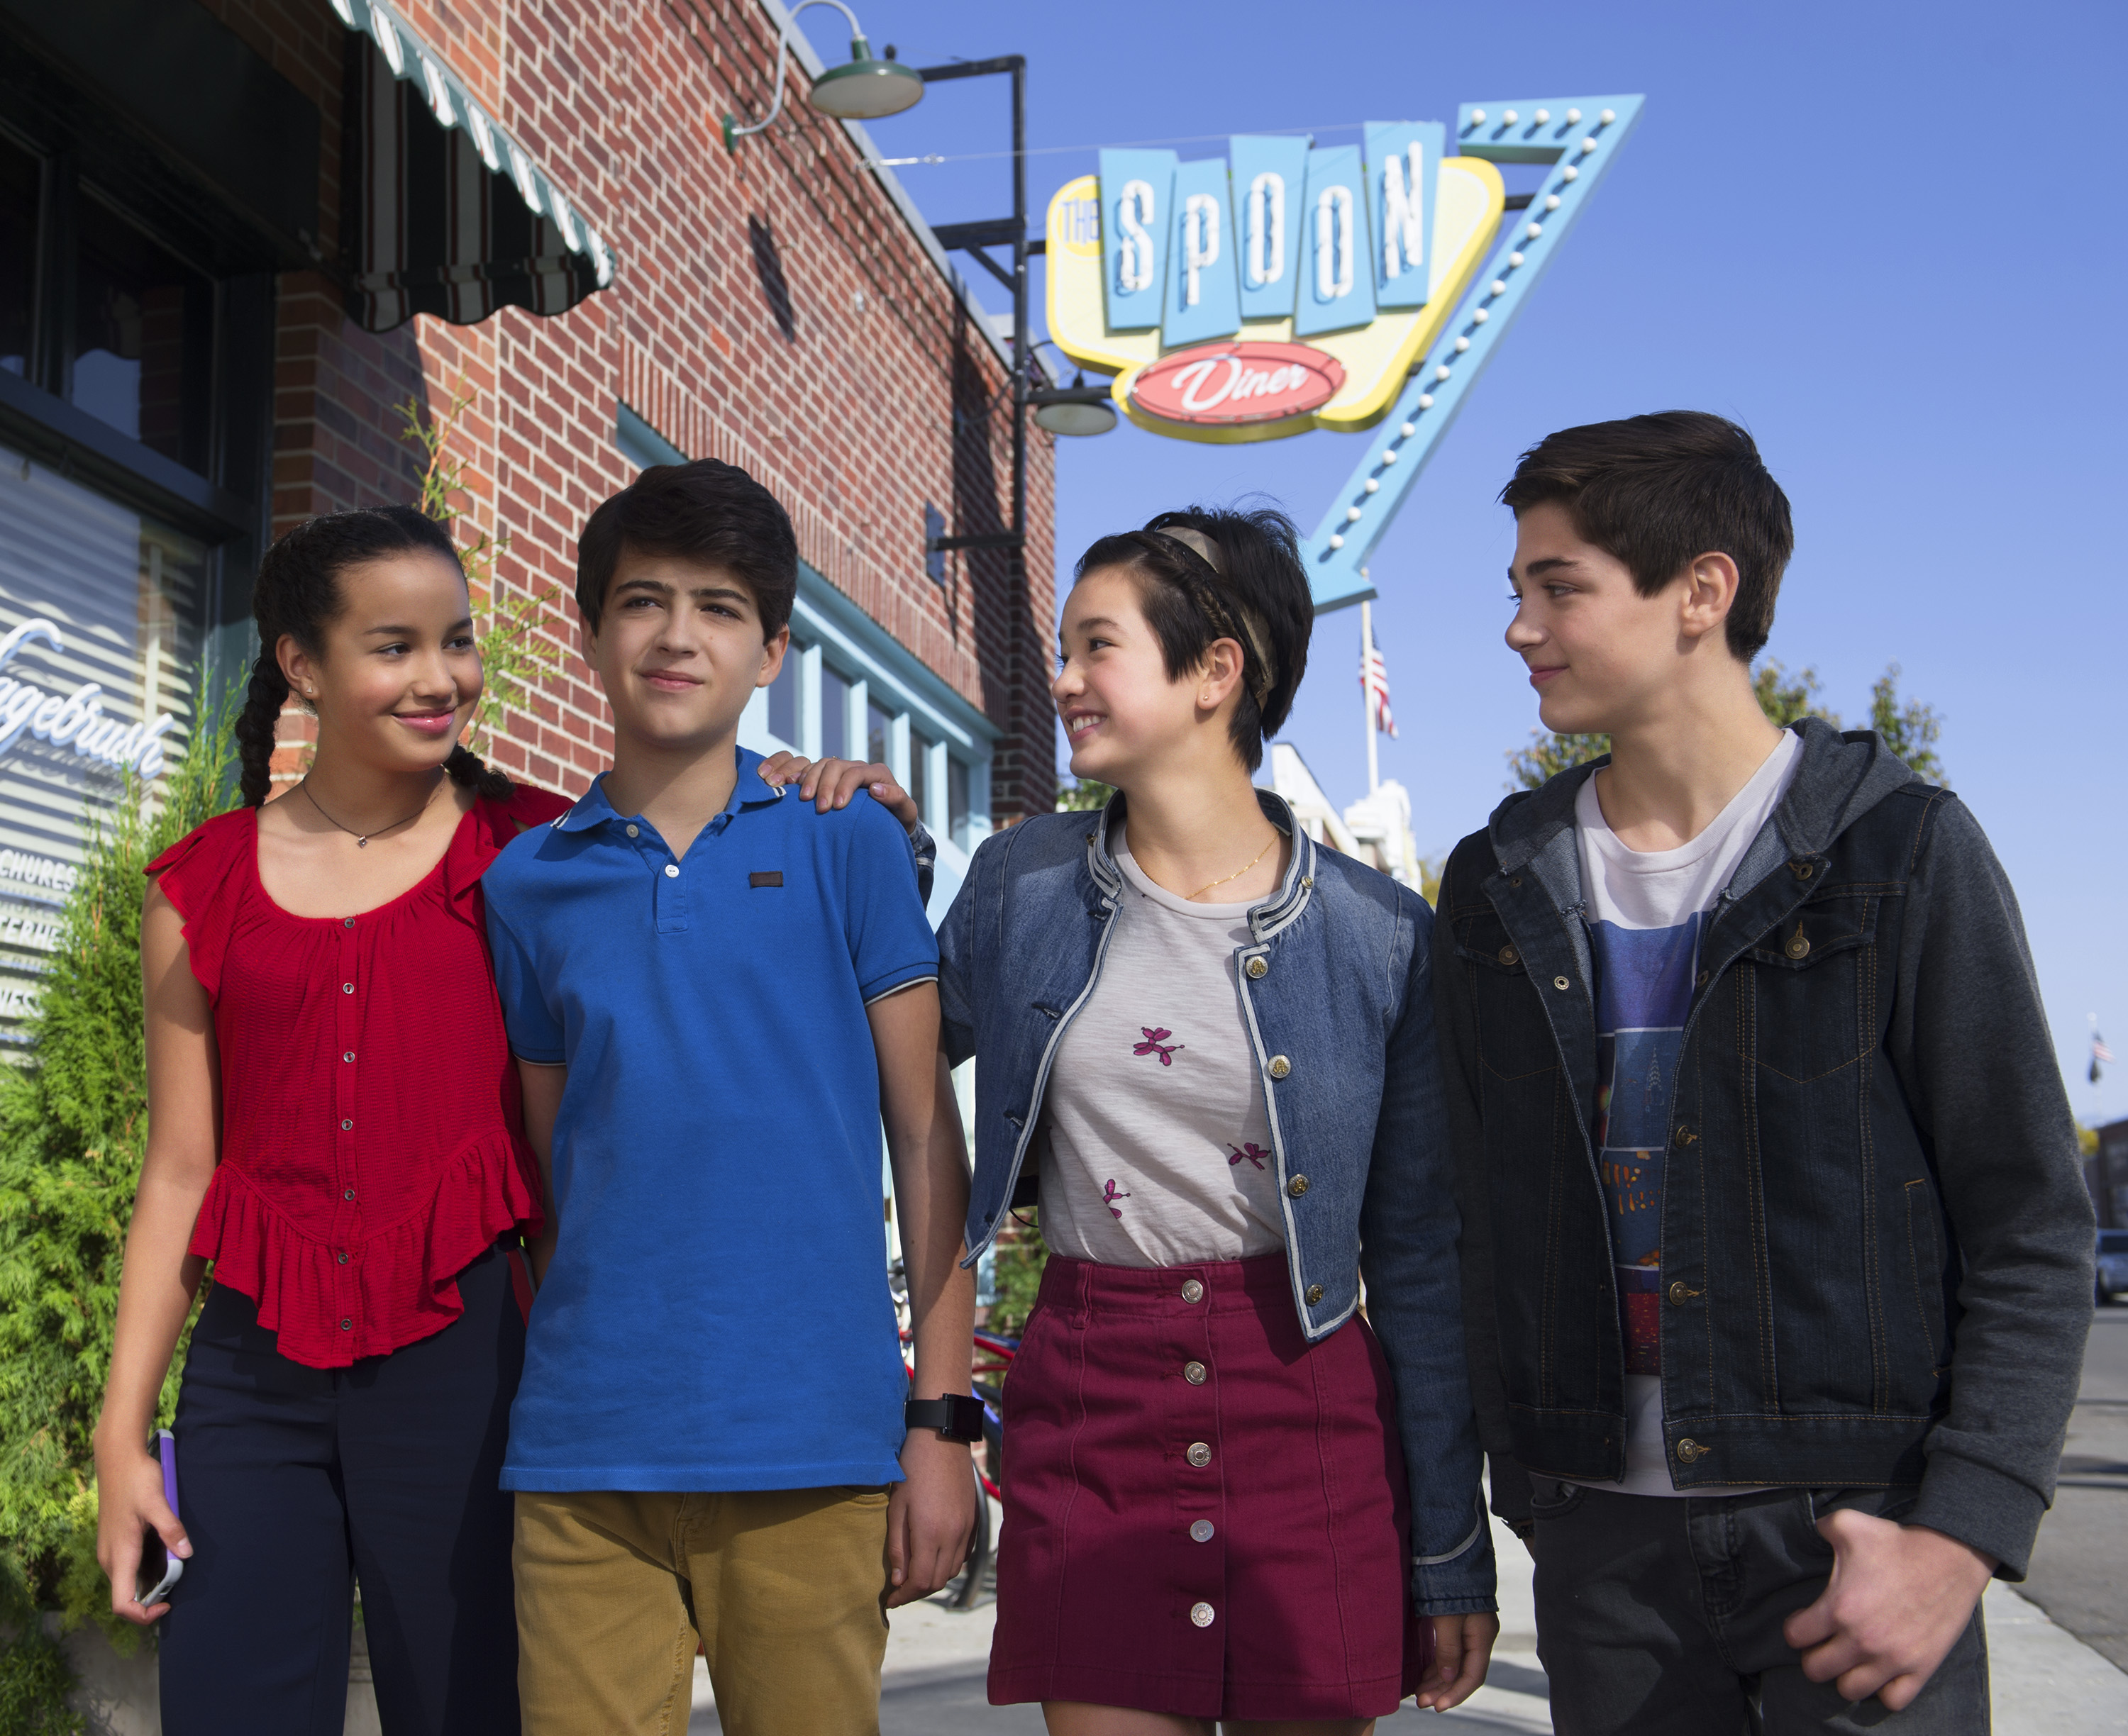 Is Andi Mack On Netflix? Where to Watch the Disney Channel Show Online